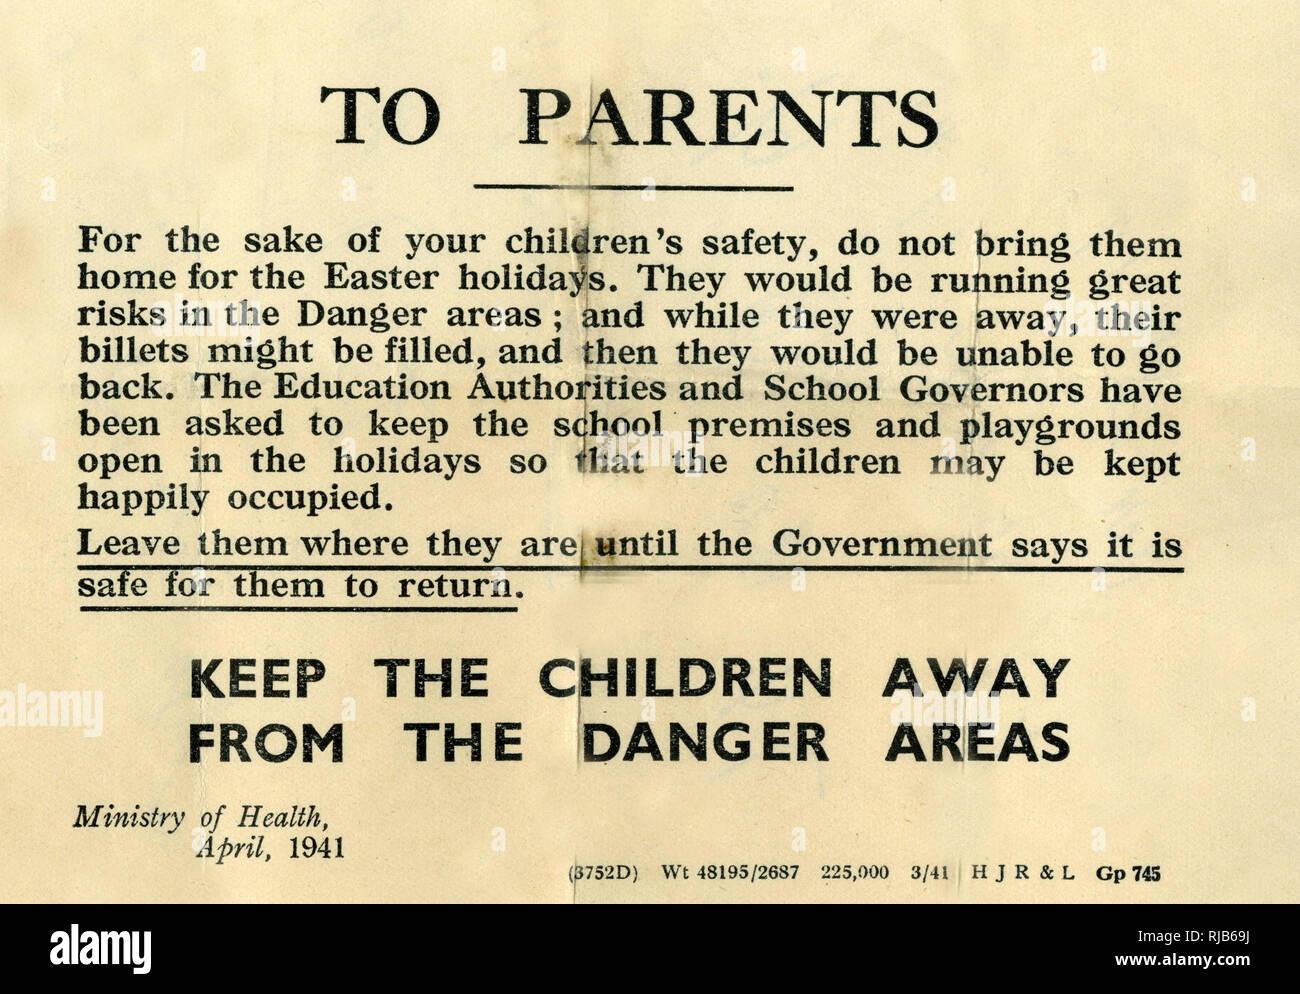 Ministry of Health leaflet to parents during the Second World War, advising them not to bring their evacuated children home during the Easter holidays. - Stock Image